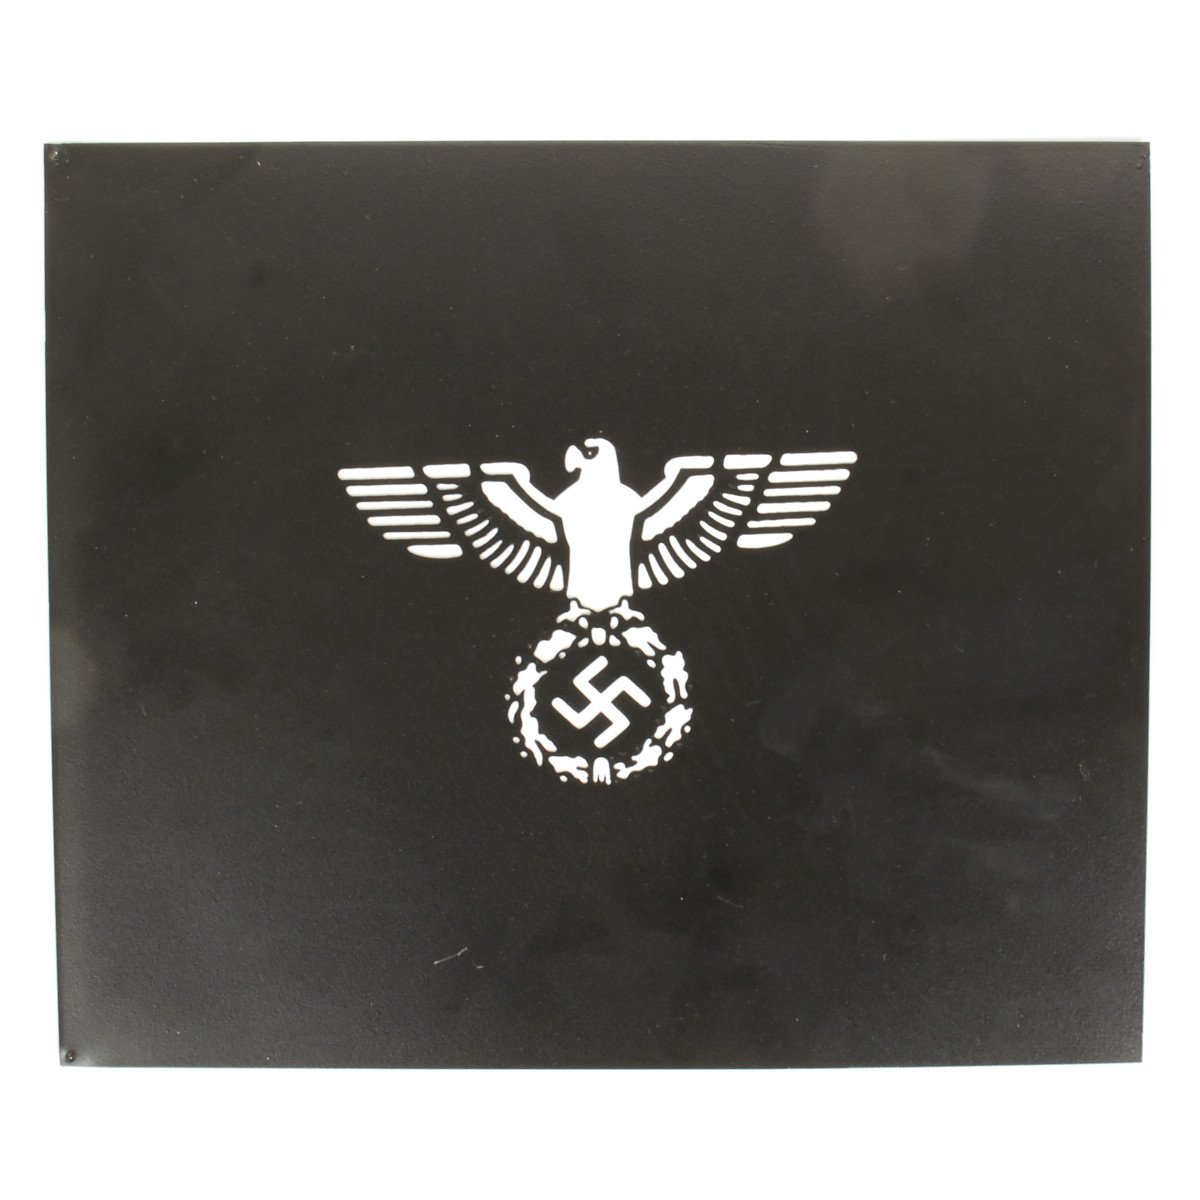 German WWII Eagle Reichsadler Stencil- Small (5 25 x 3 5)